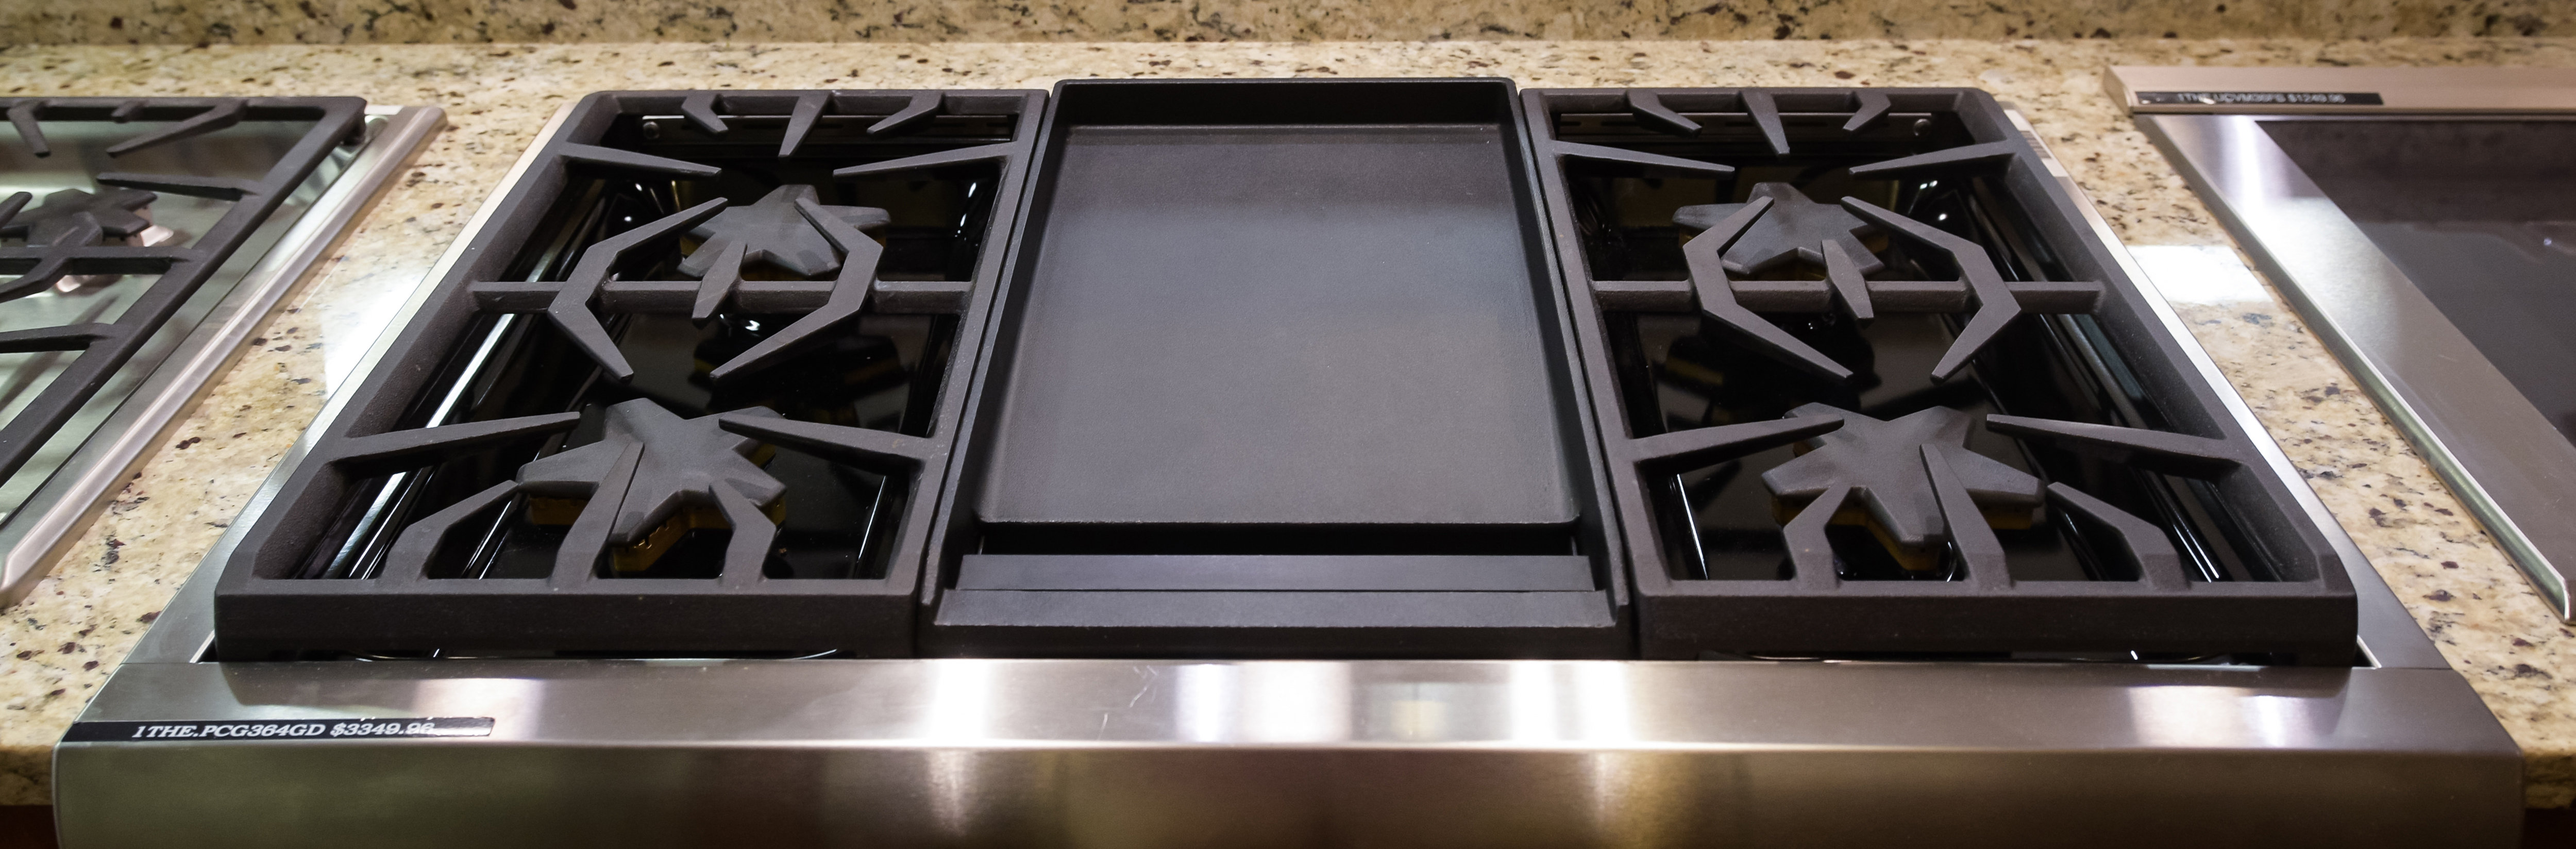 Rangetop with Griddle